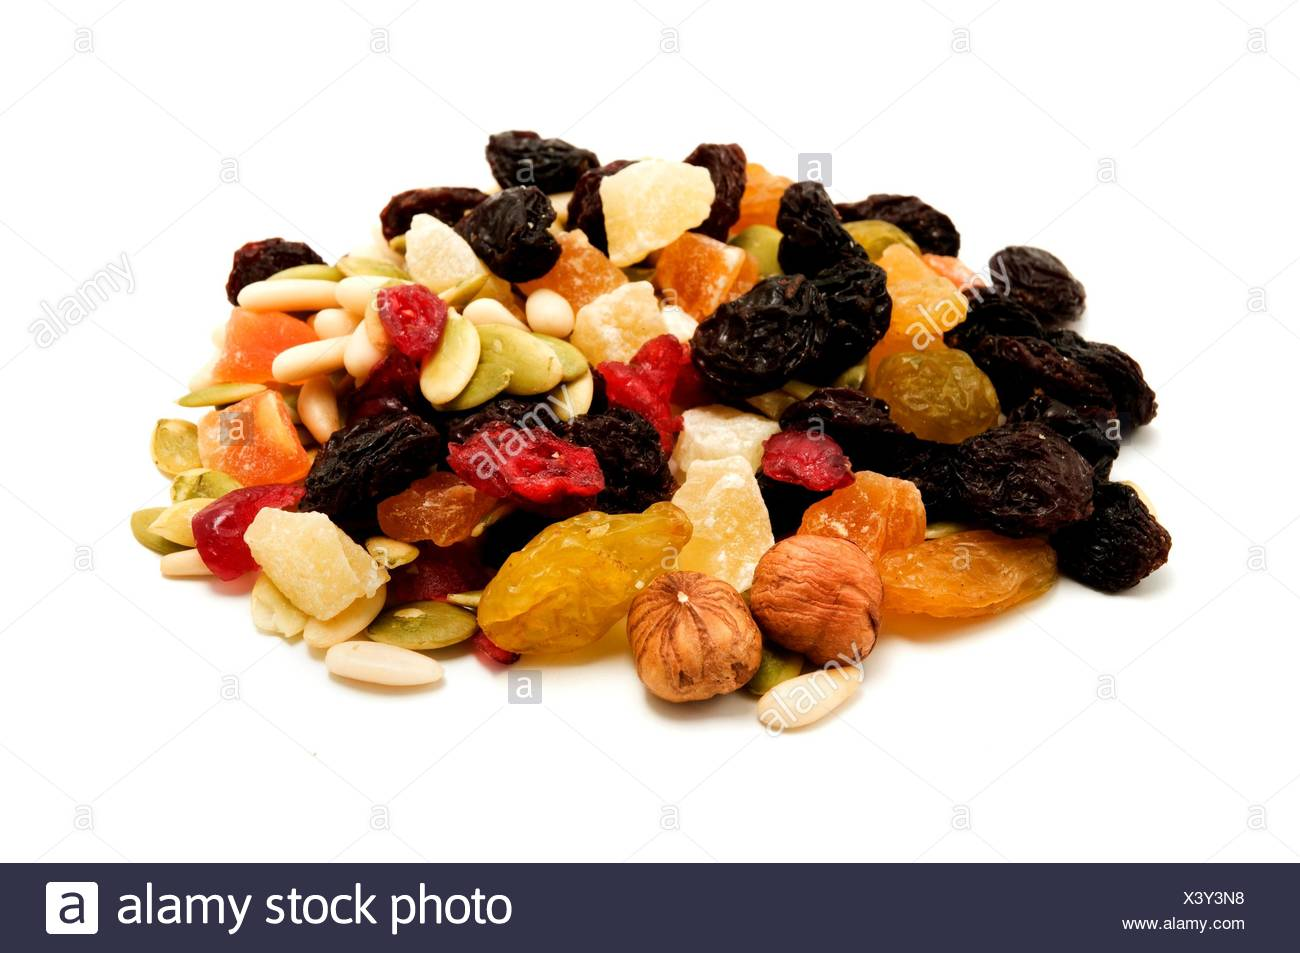 Mixed dried fruits on a white background - Stock Image